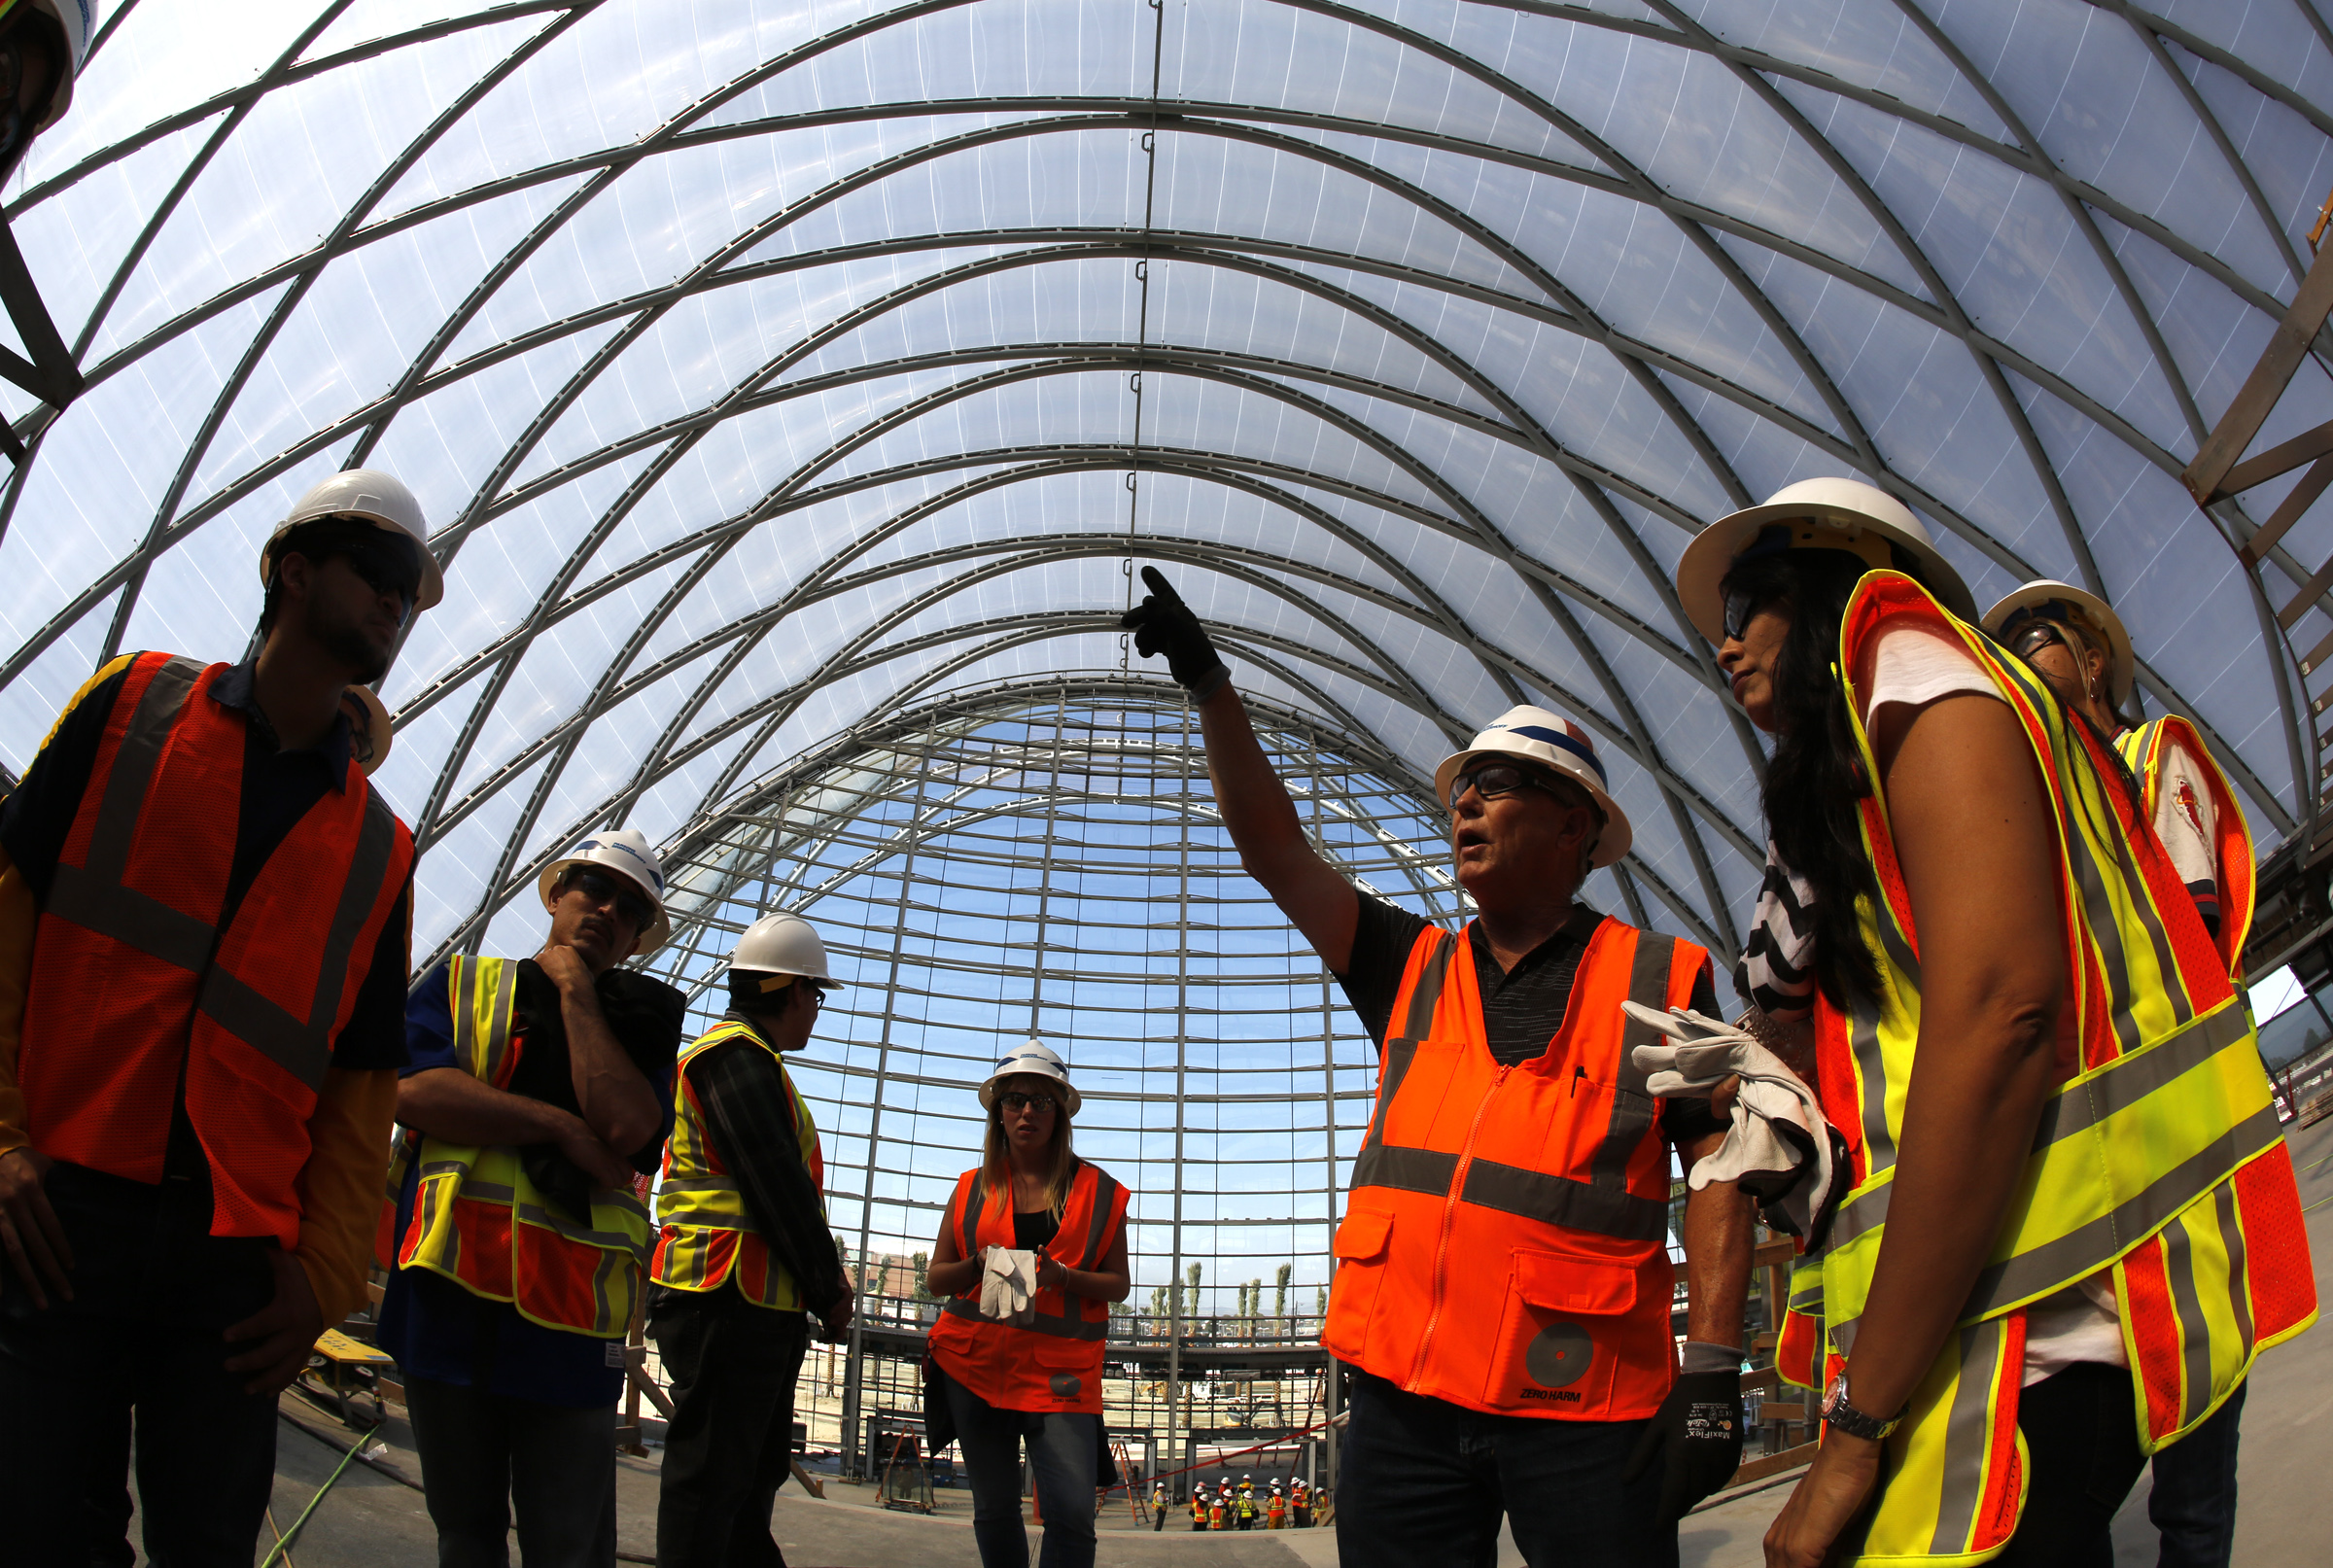 Startups, high-speed rail and California's infrastructure future